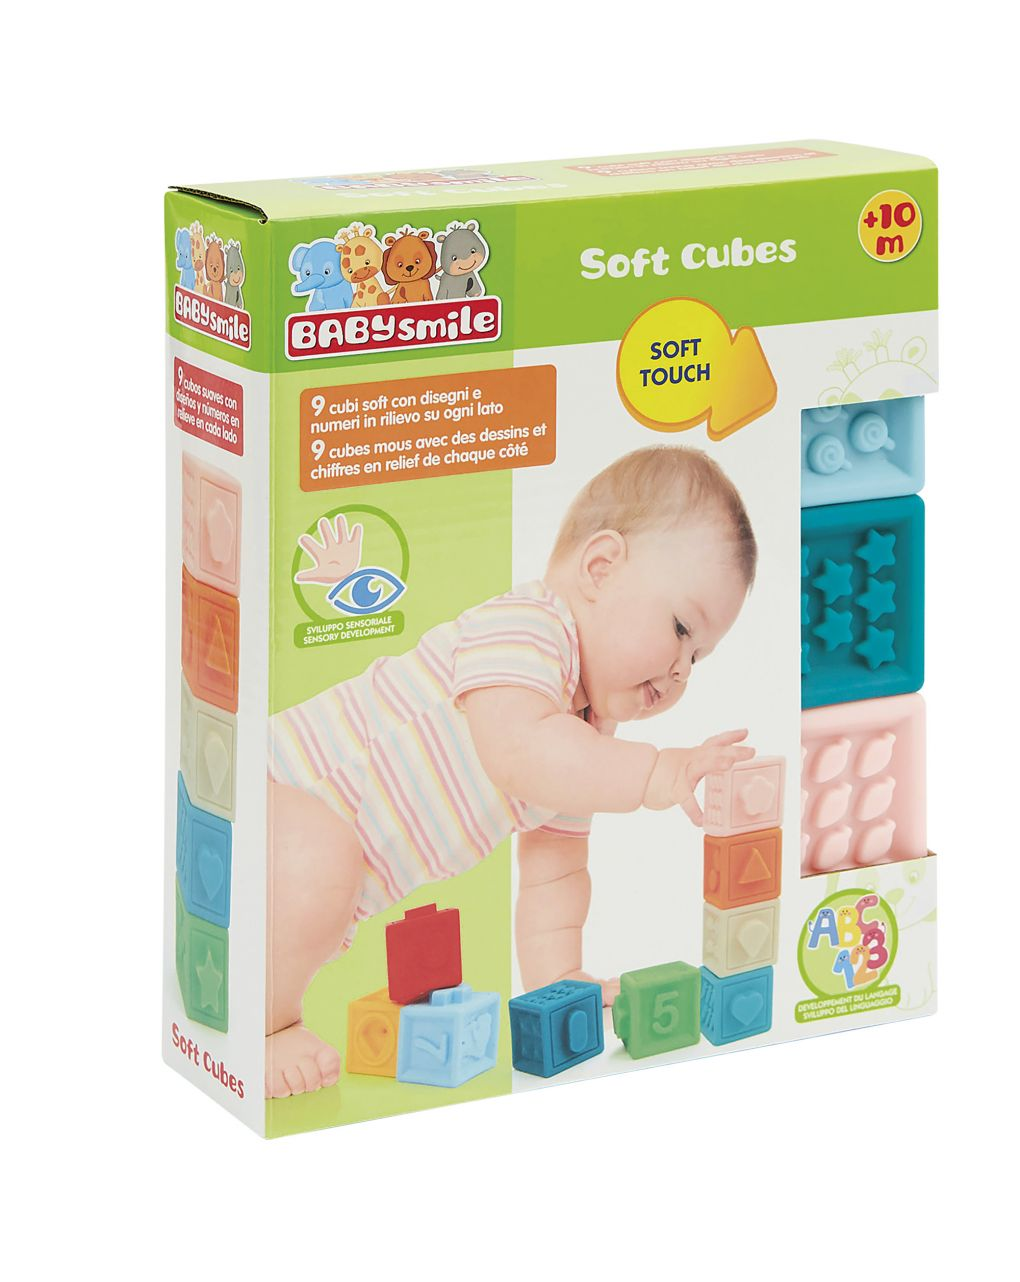 Baby smile - cubi soft - Baby Smile